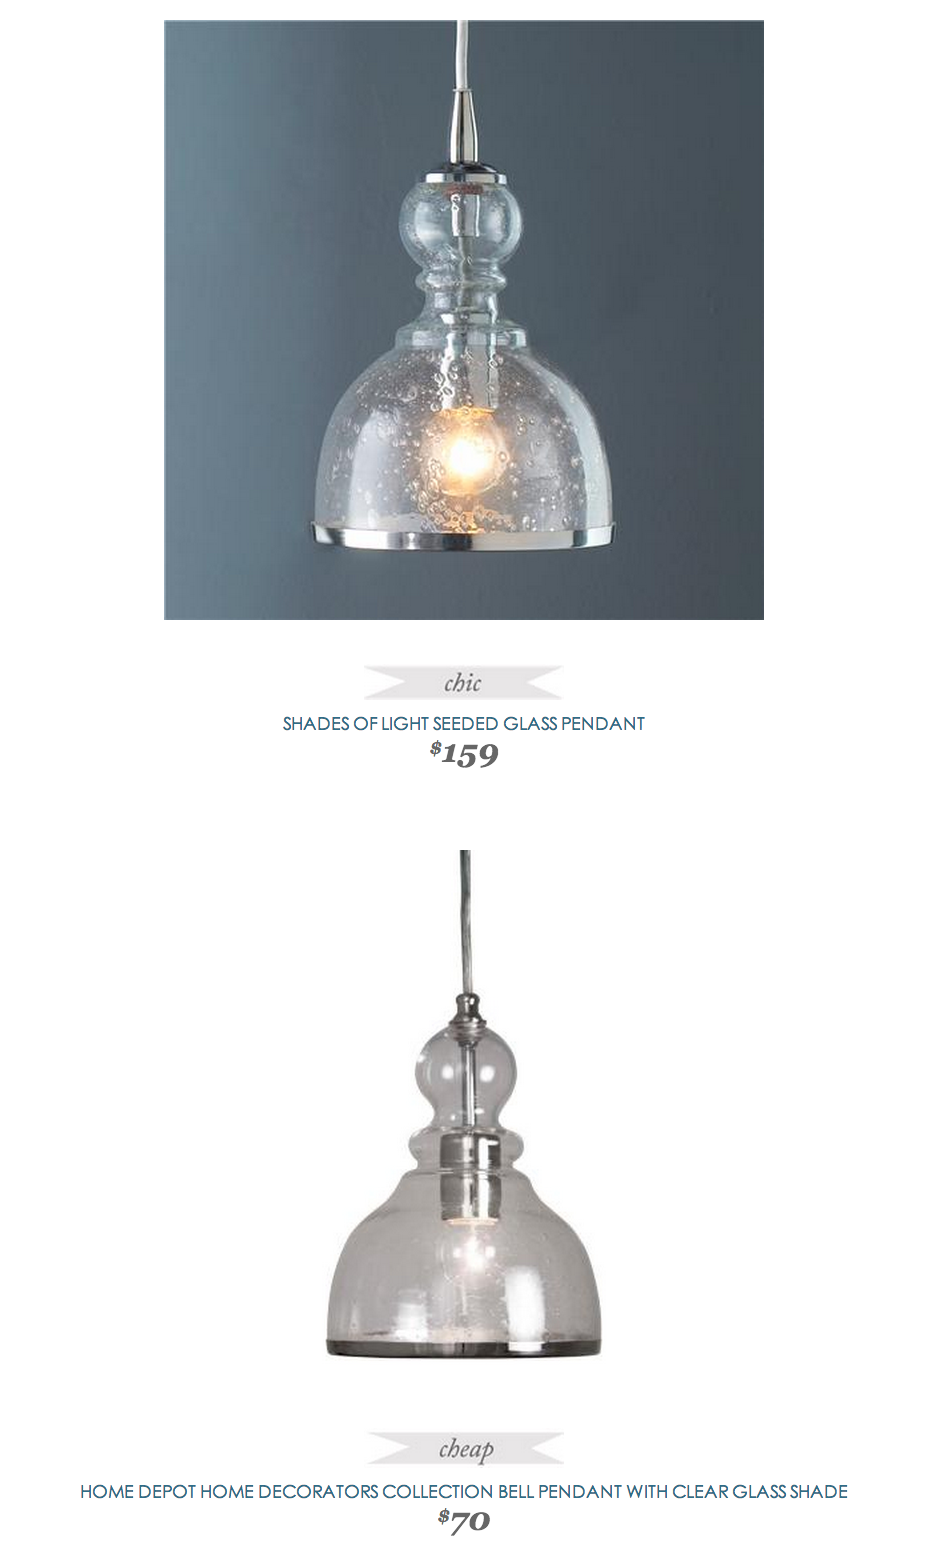 Beau Copy Cat Chic Find | SHADES OF LIGHT SEEDED GLASS PENDANT Vs HOME DEPOT HOME  DECORATORS